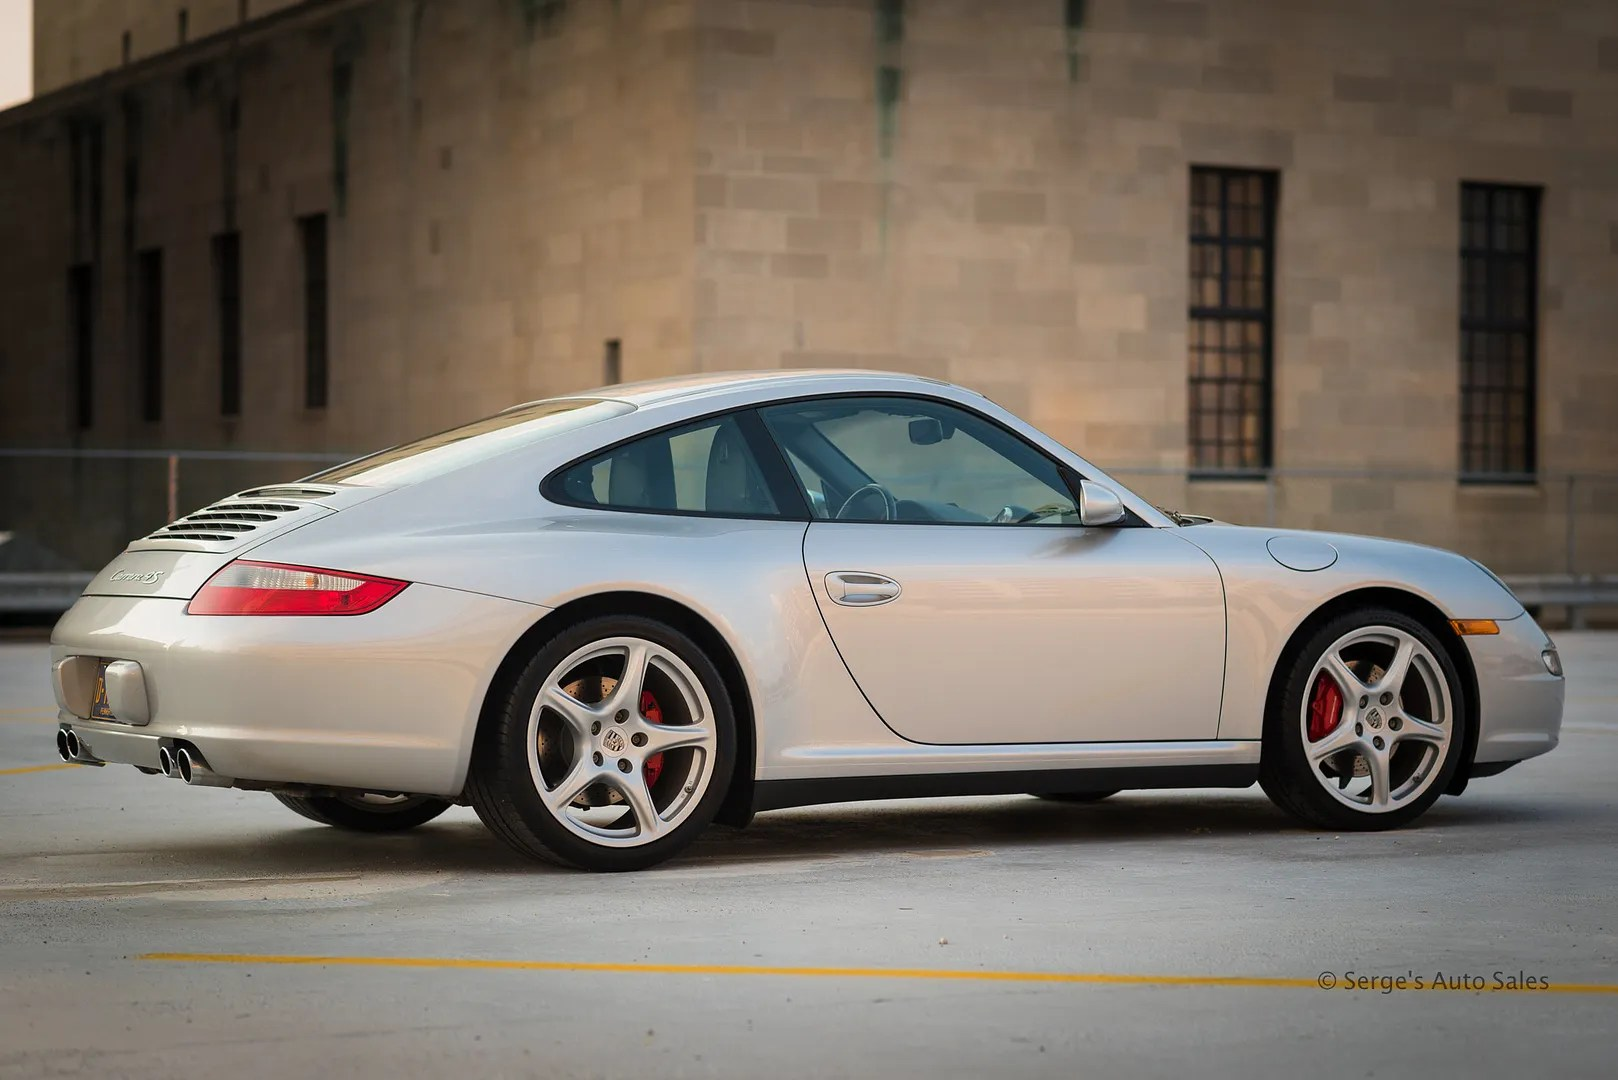 photo Serges-auto-sales-porsche-911-for-sale-scranton-pennsylvania-9_zpsnf6ub2dn.jpg